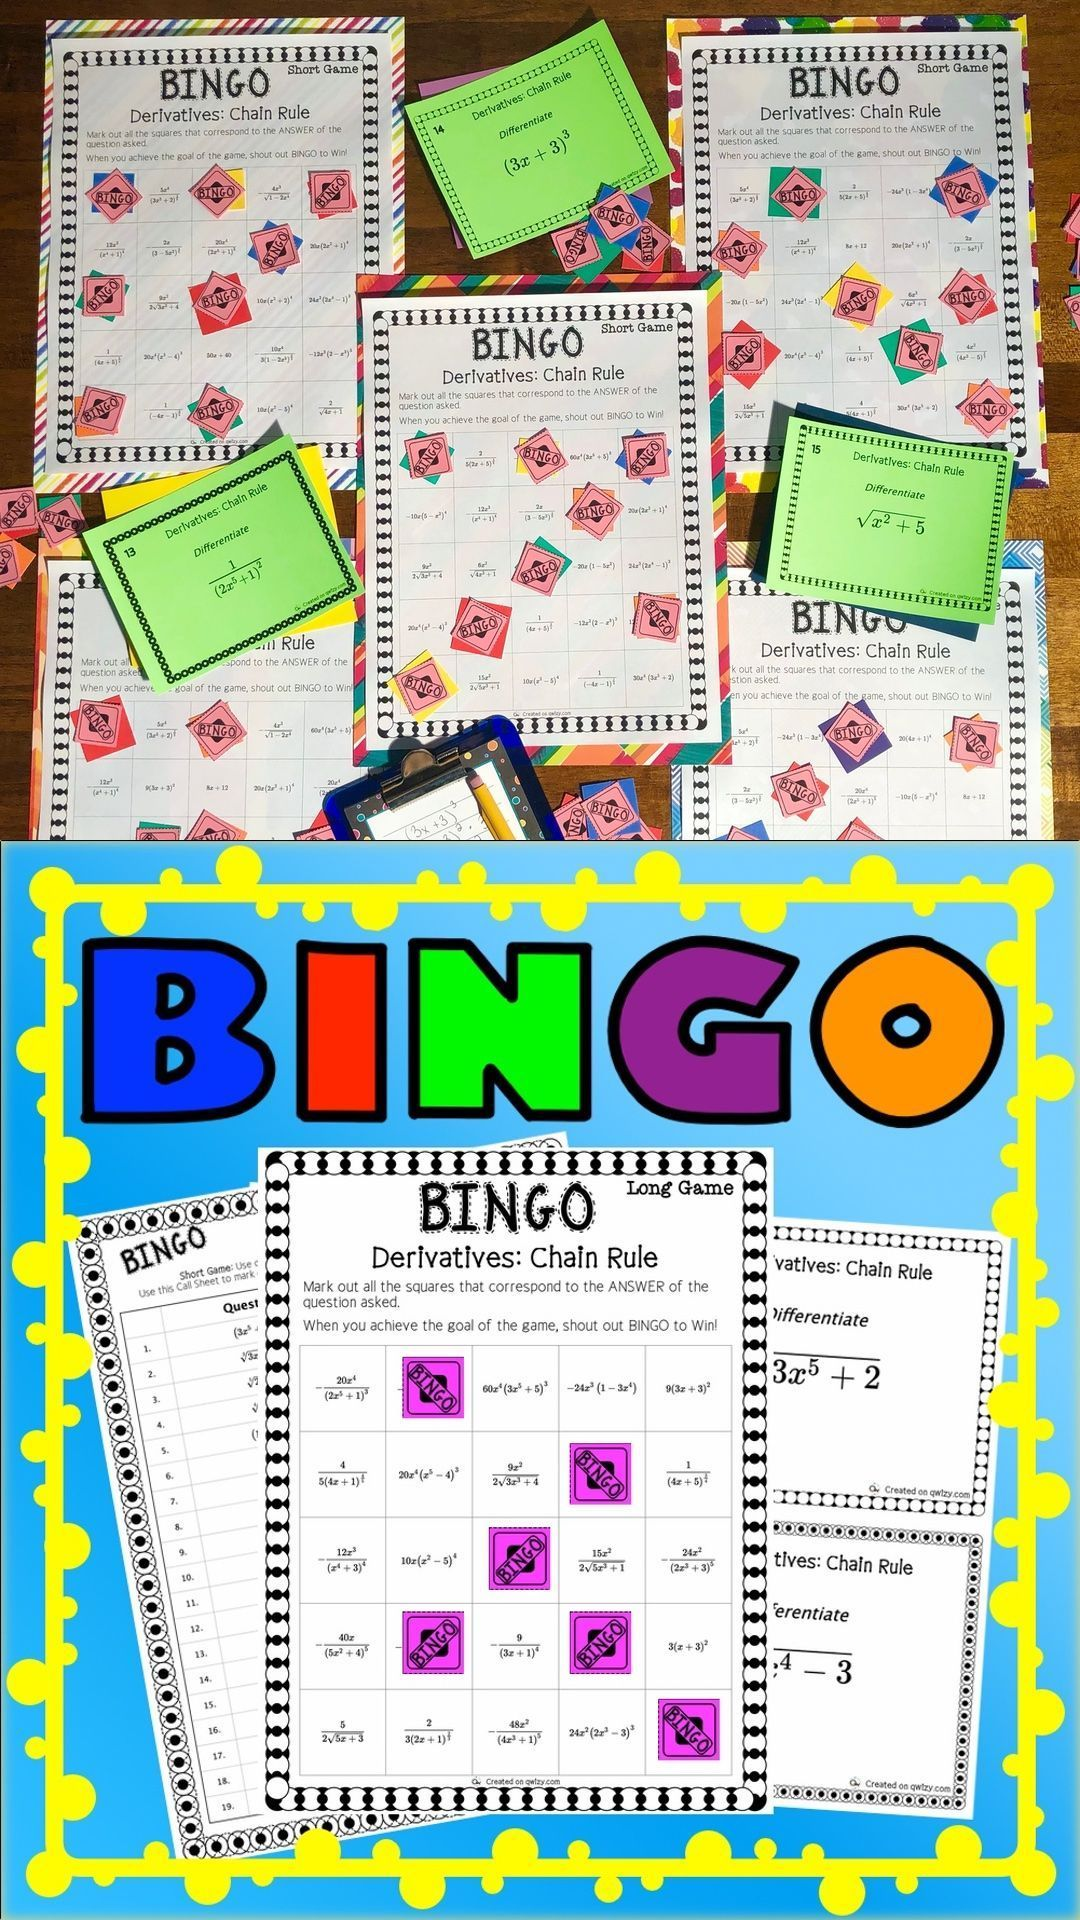 Derivatives Chain Rule Math Bingo Includes All You Need To Run An Exciting Game Of Bingo And Review The Chain Rule At The Same Math Bingo Calculus Math Major